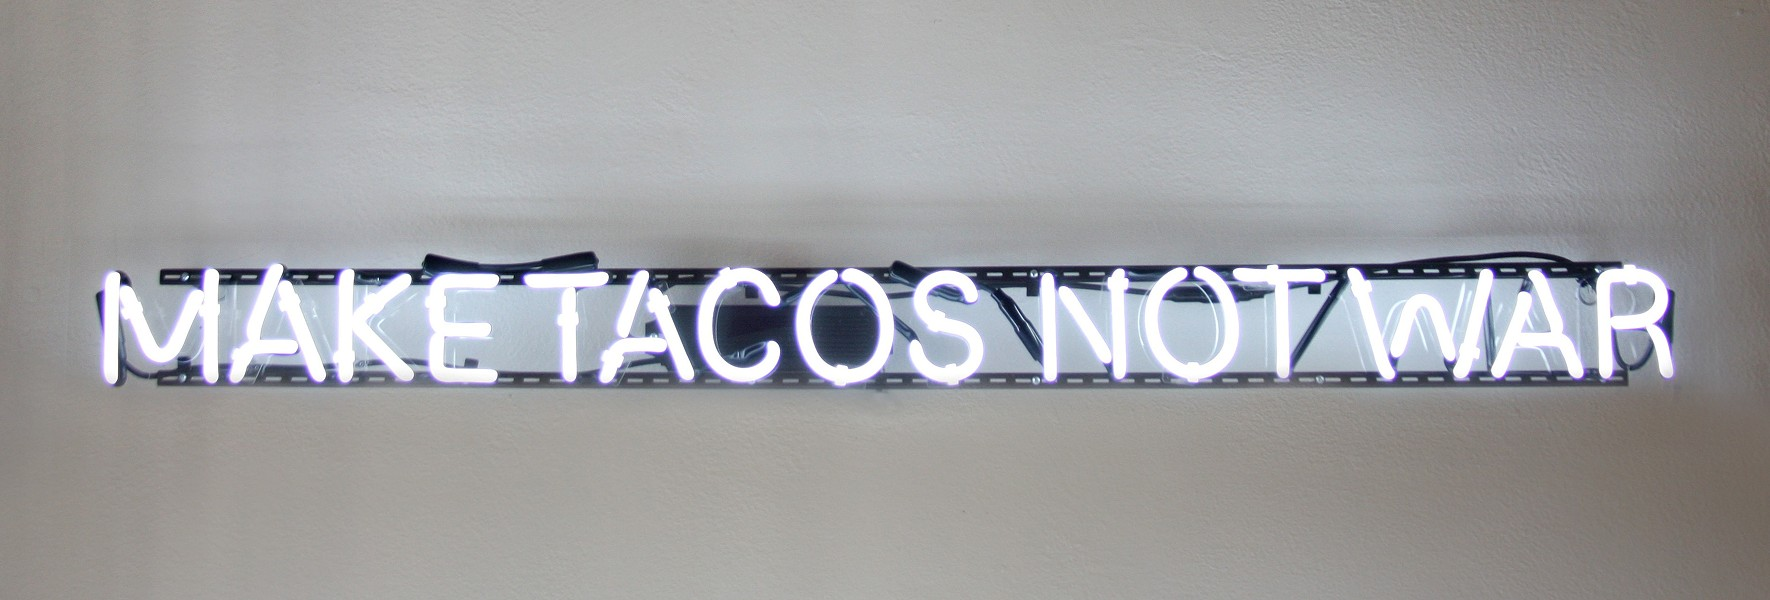 Make Tacos Not War - DAVID SHELTON GALLERY